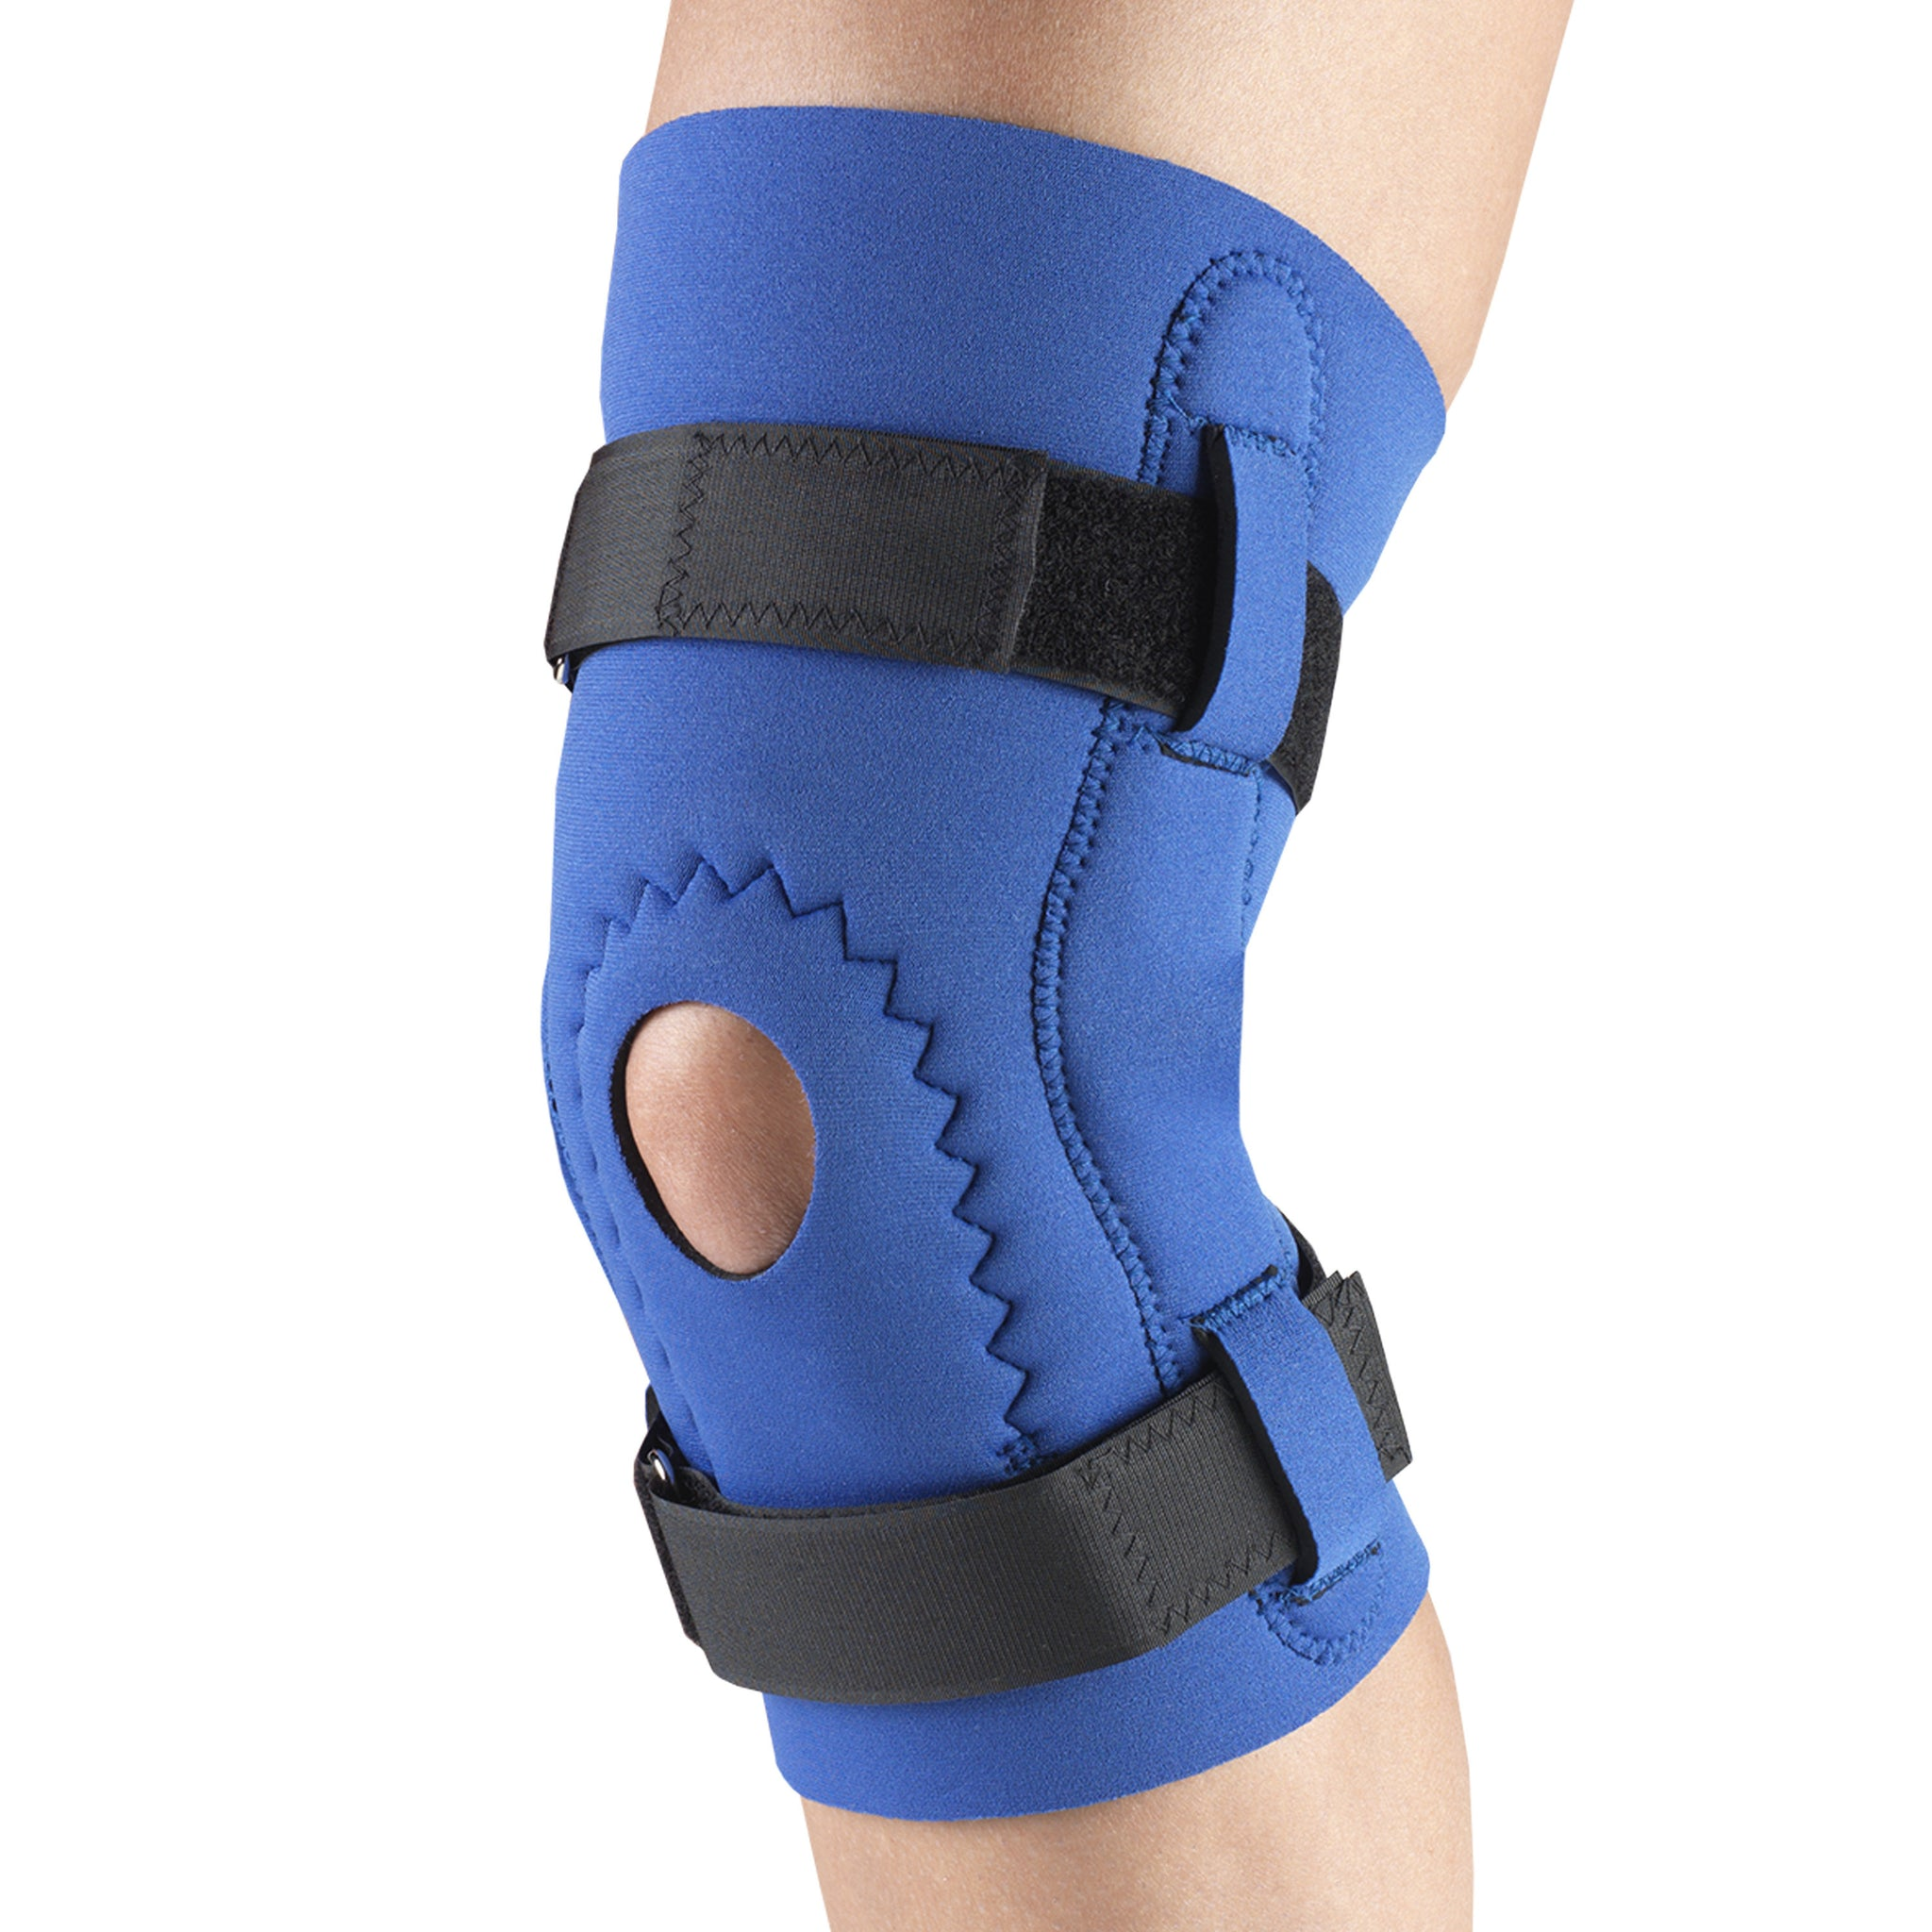 --Side of NEOPRENE KNEE SLEEVE - HOR-SHU PAD, HINGED BARS--